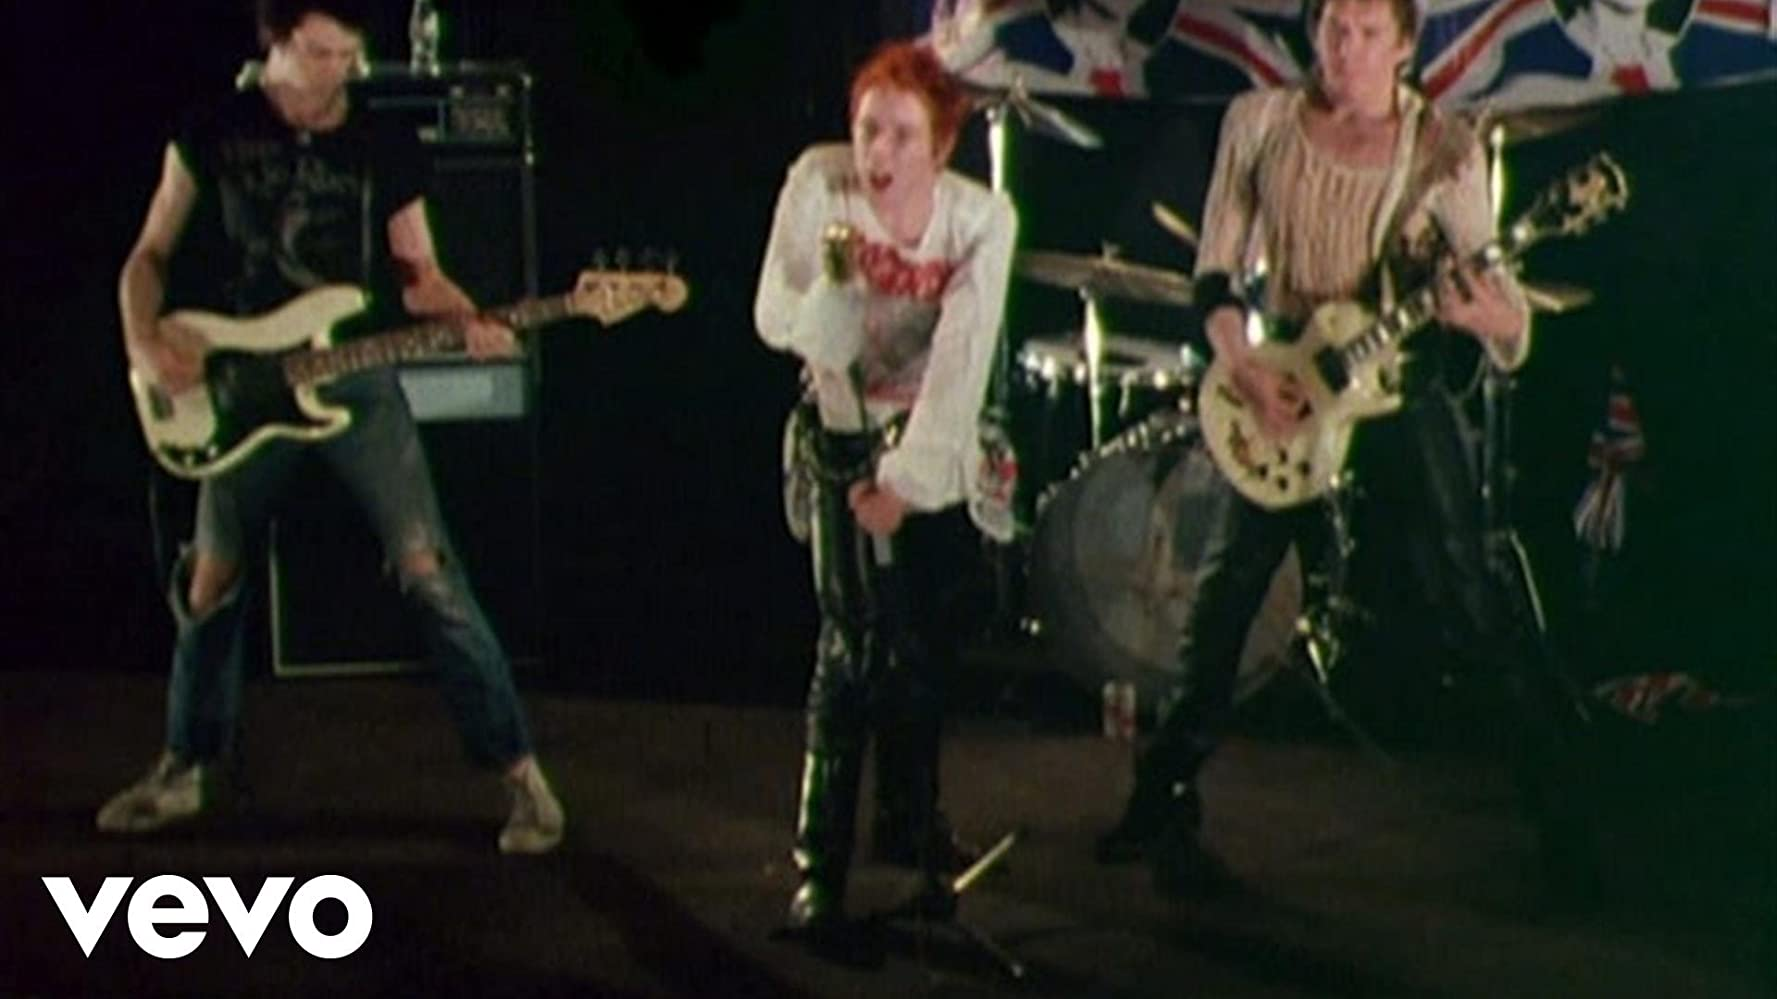 God save the queen sex pistols guitar